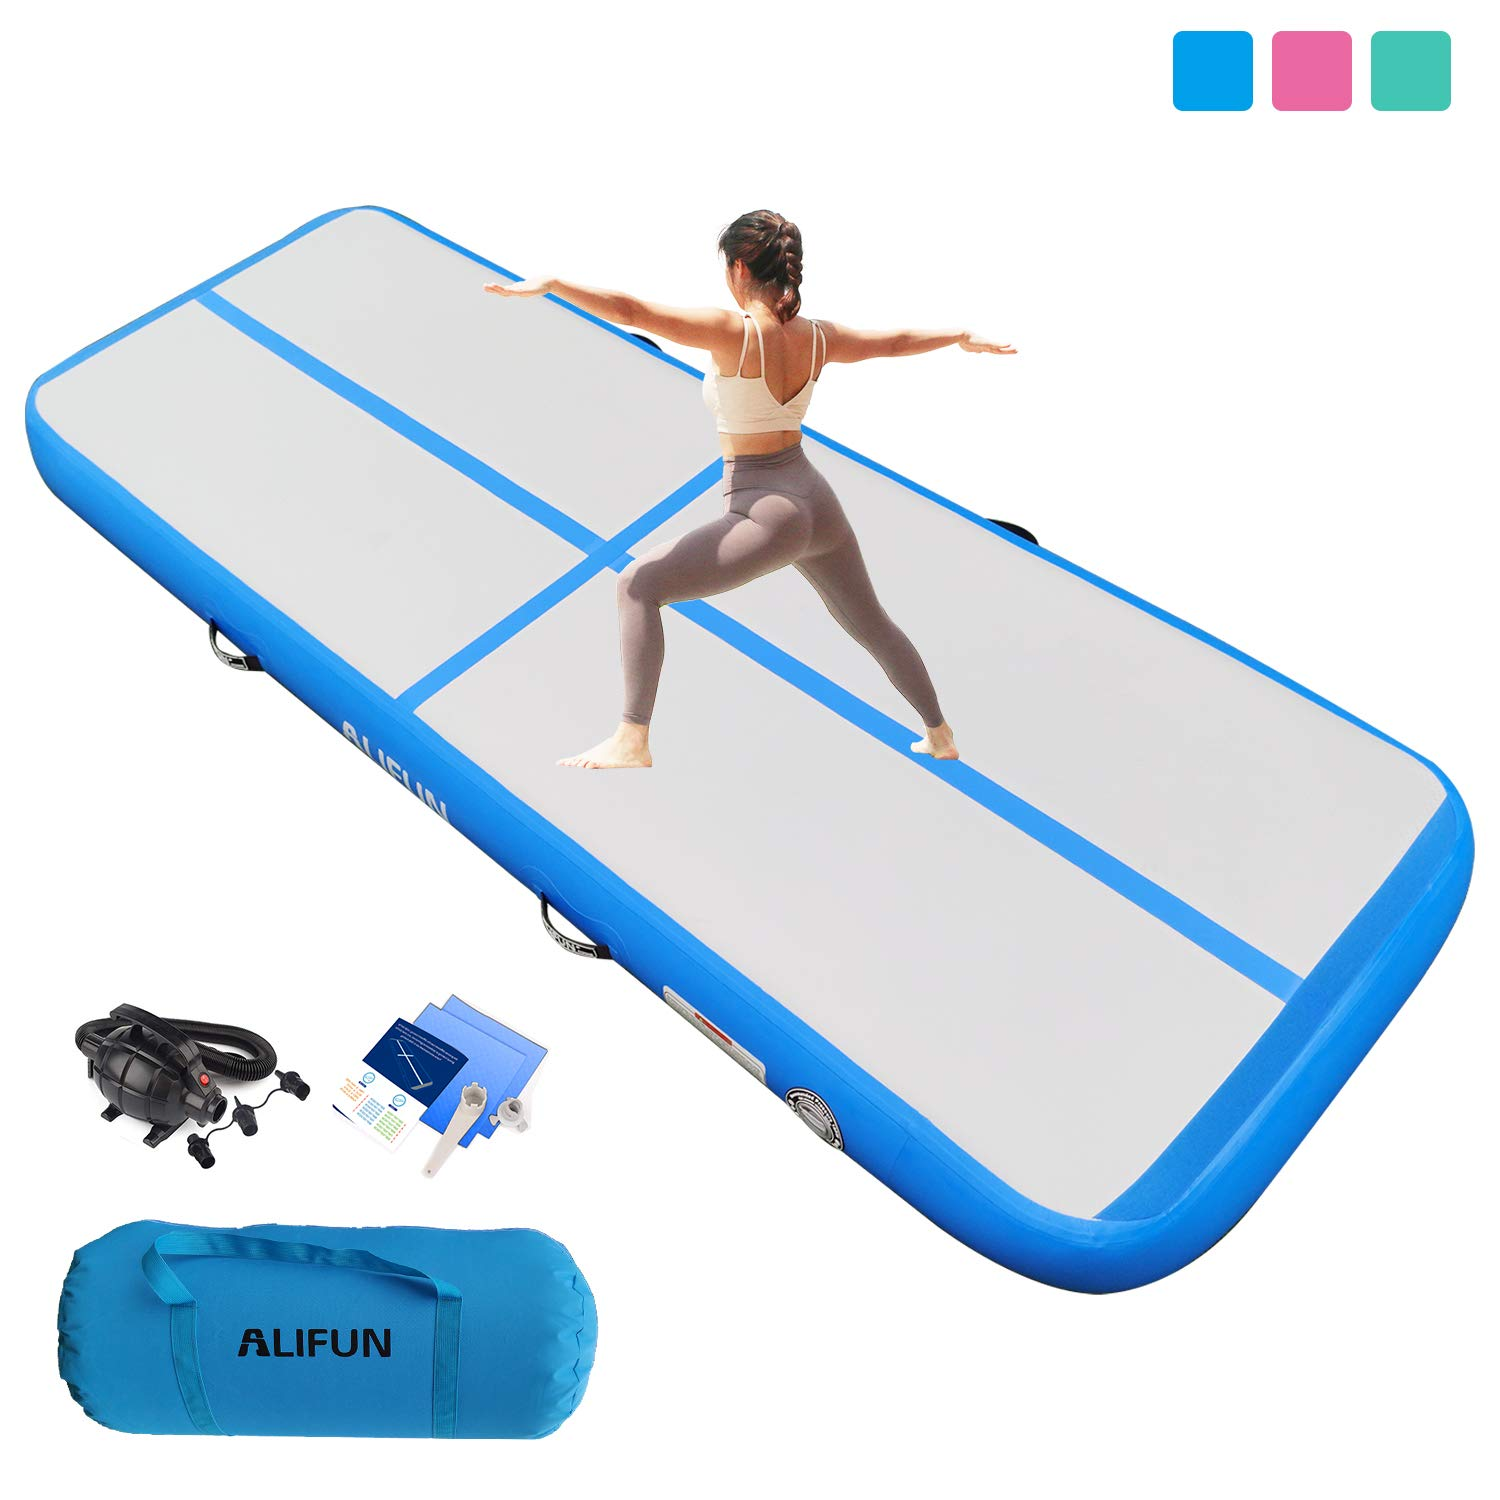 Air Track Inflatable Gymnastics Tumble Track Gym Mat 10ft 13ft 16ft 20ft for Toddler Adults, Gym Air Floor Yoga Mat for Outdoor Sports Training Cheerleading